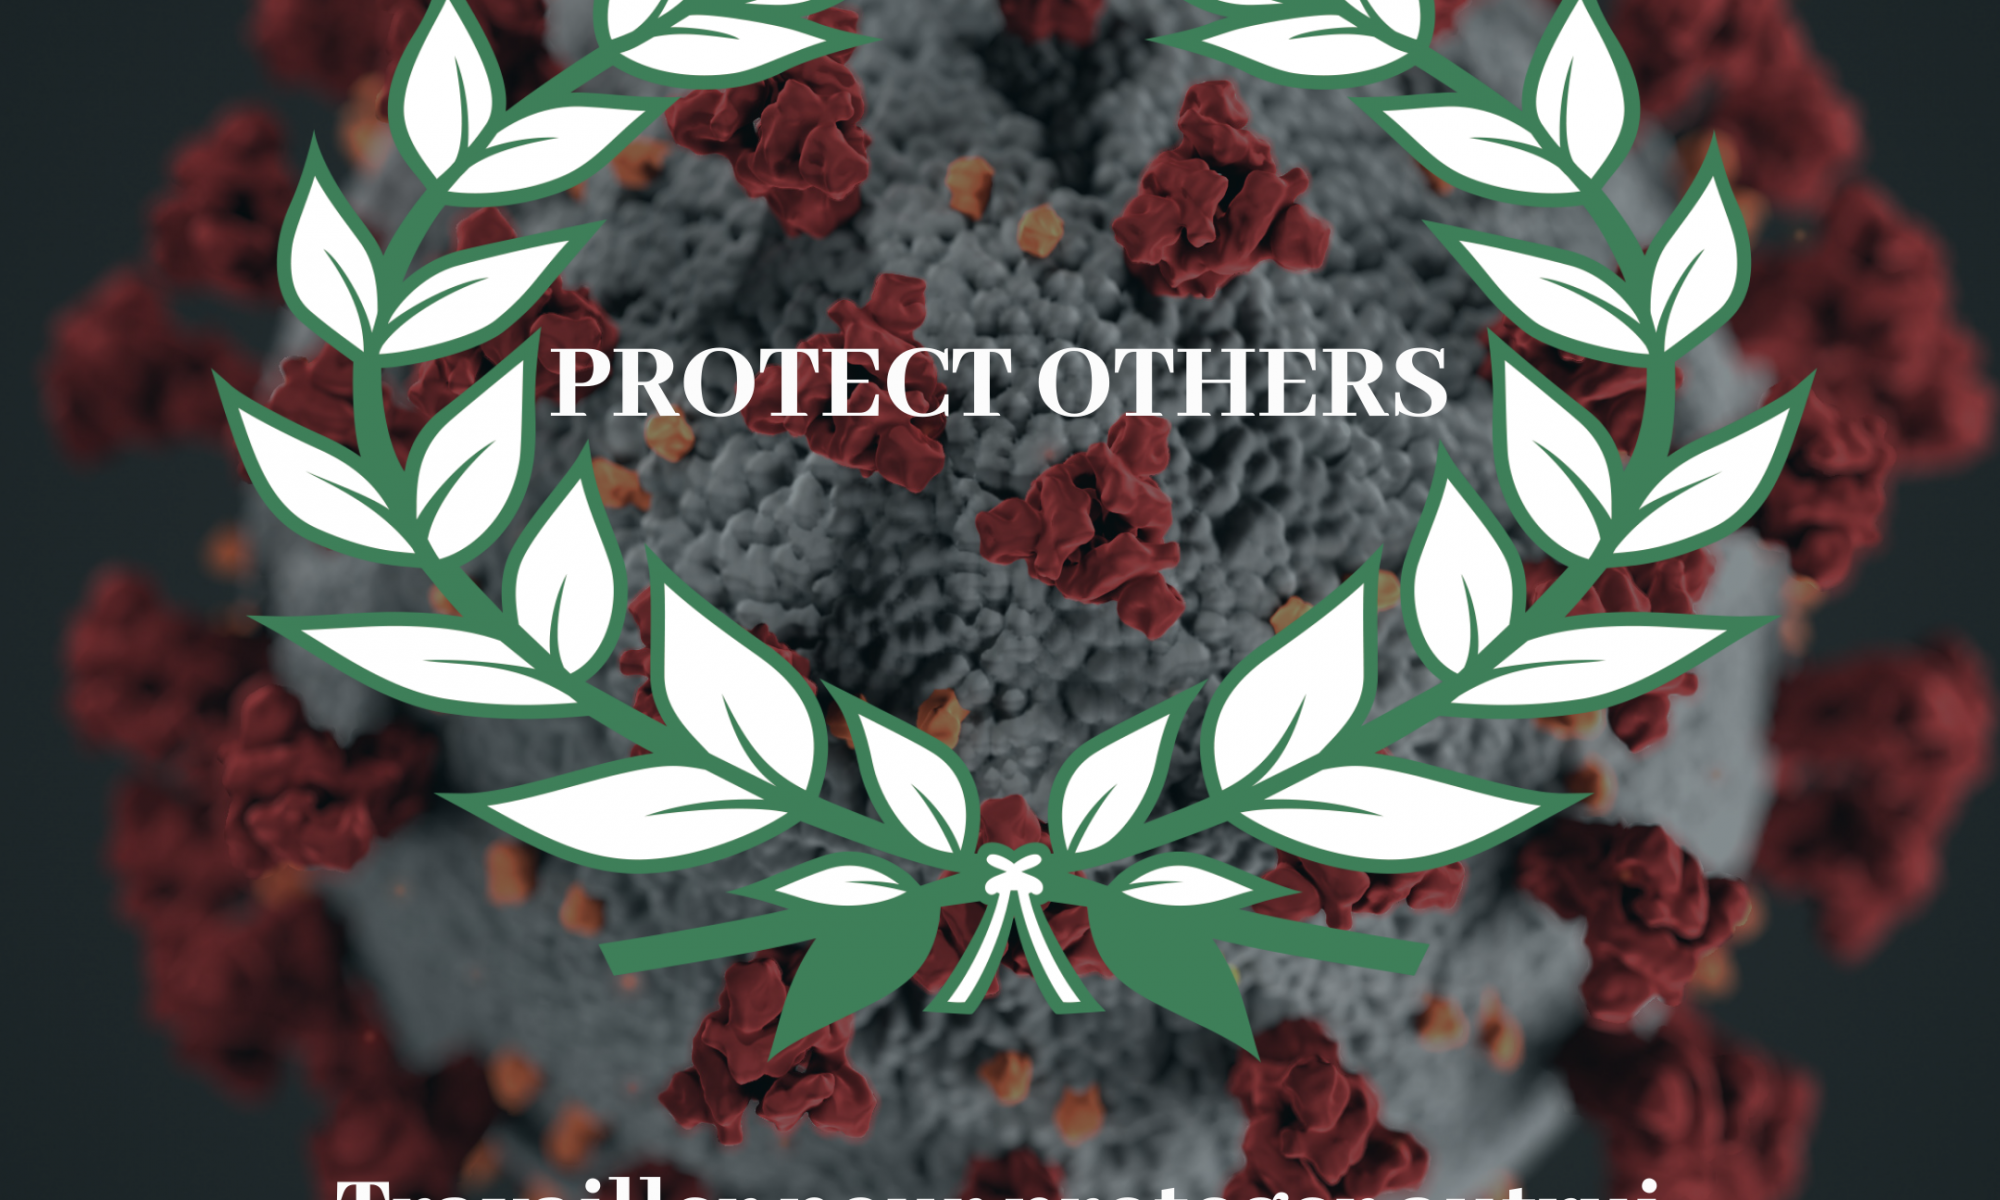 logo protect others Securite privee cove-19